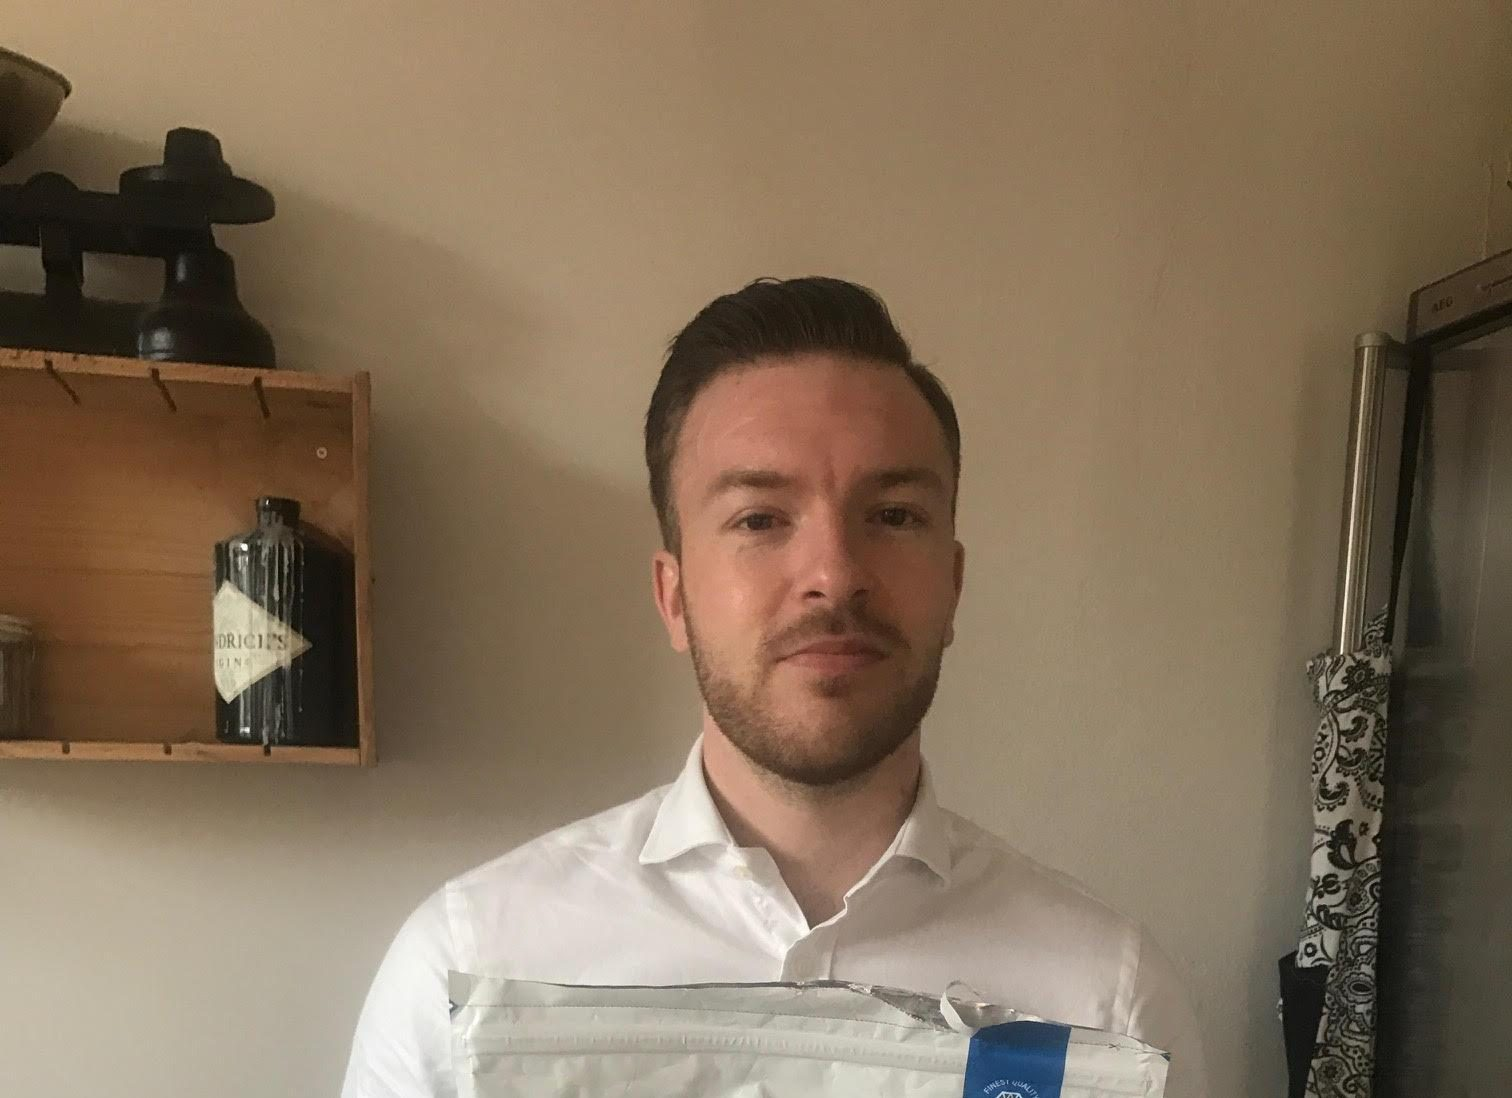 Man who claimed he found a dead mouse in sealed protein powder bag admits LYING